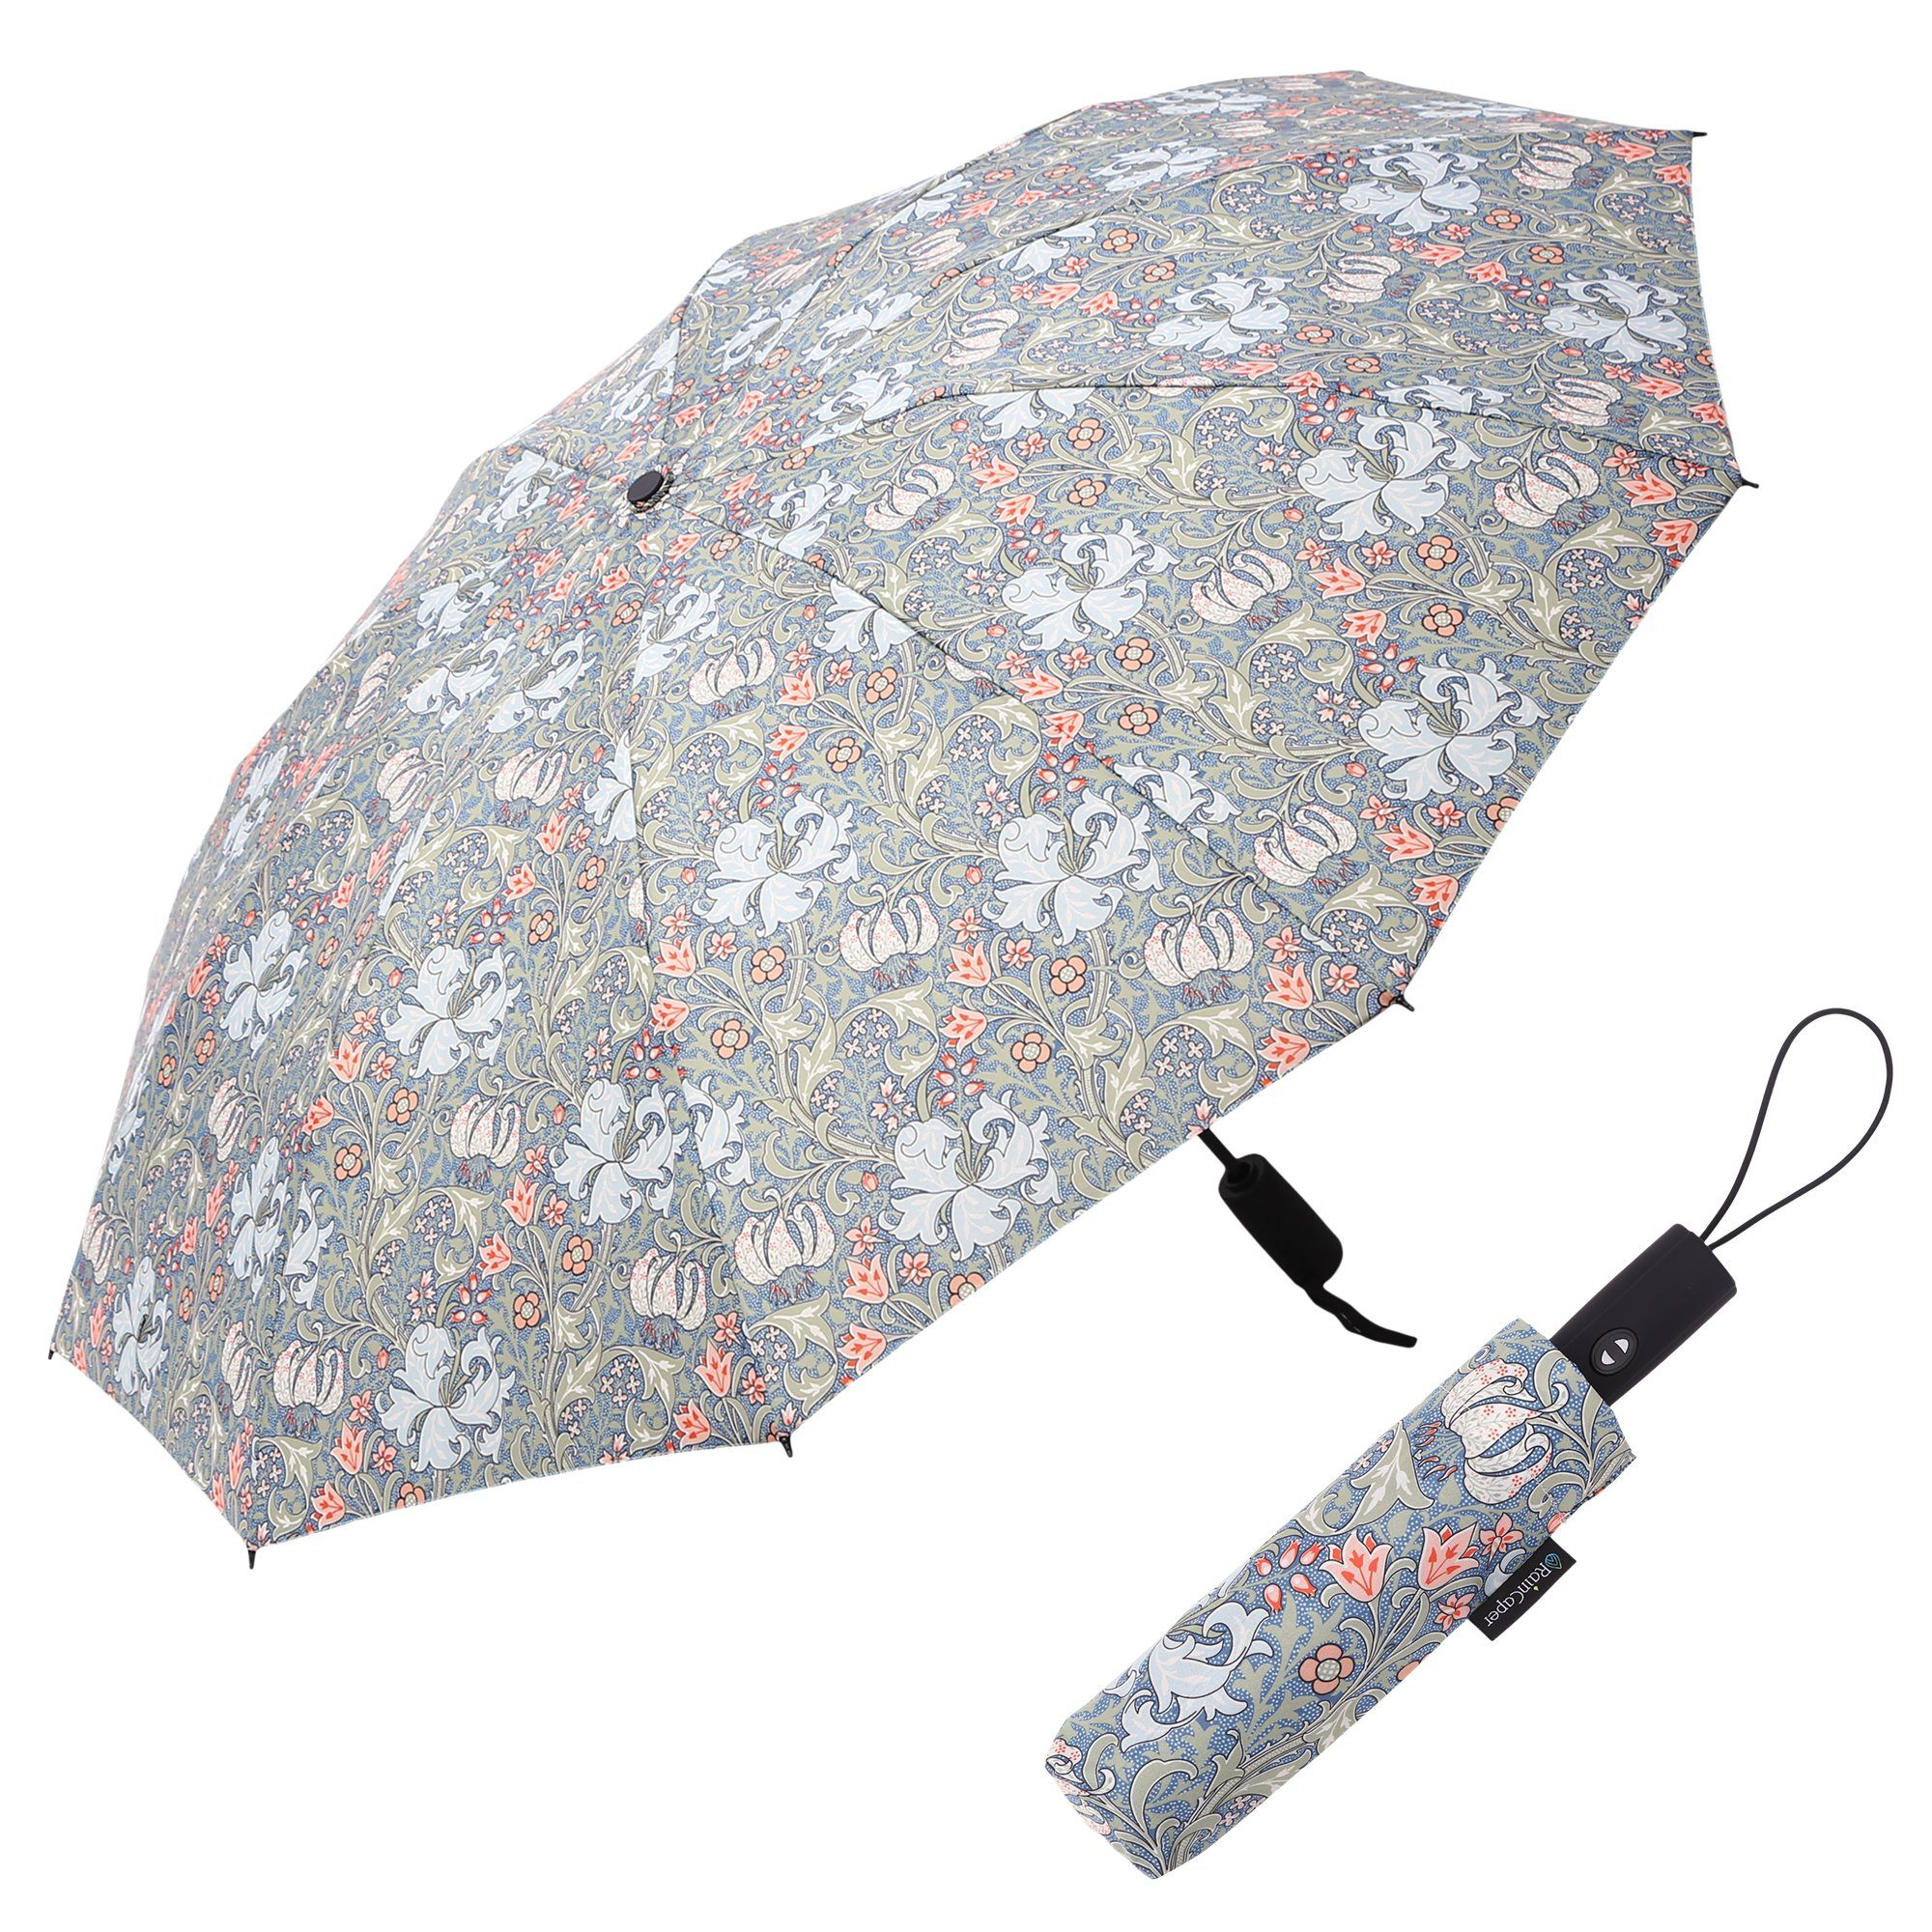 Image of a RainCaper William Morris Lily folded traveling umbrella shown both open and closed